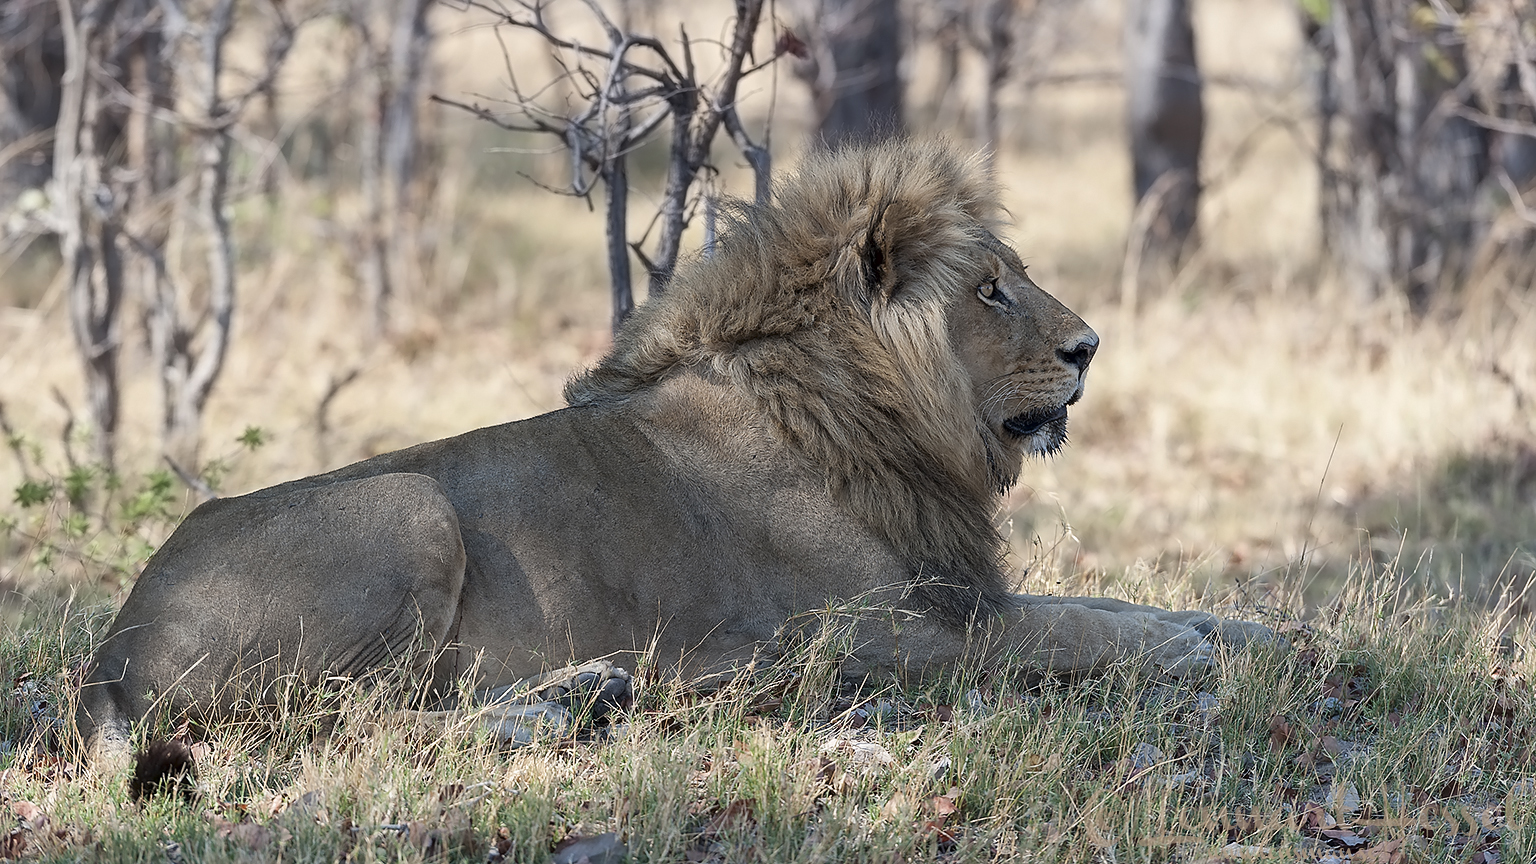 Lion in Moremi Game Reserve, Botswana